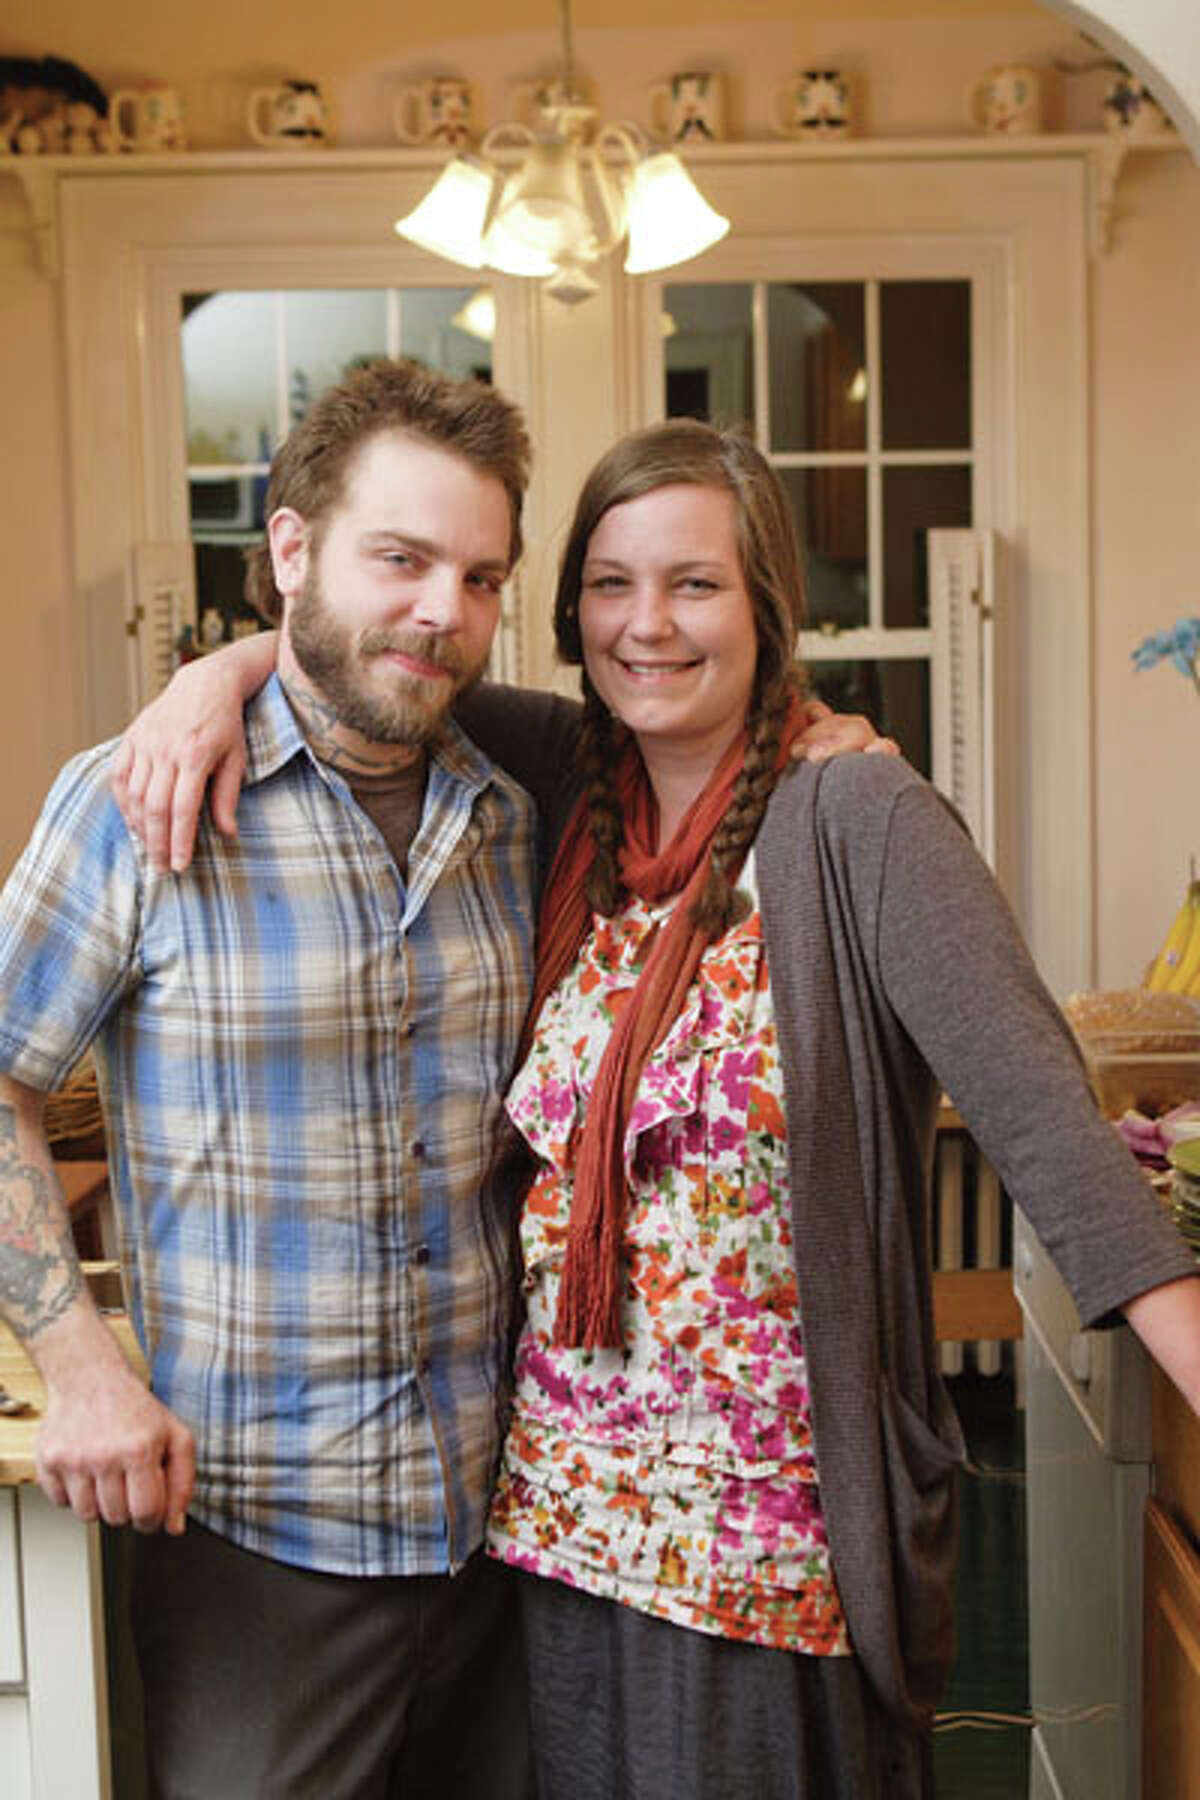 Nick and Britin Foster run a vegetarian cafe, All Good Bakers (the award-winning pick for